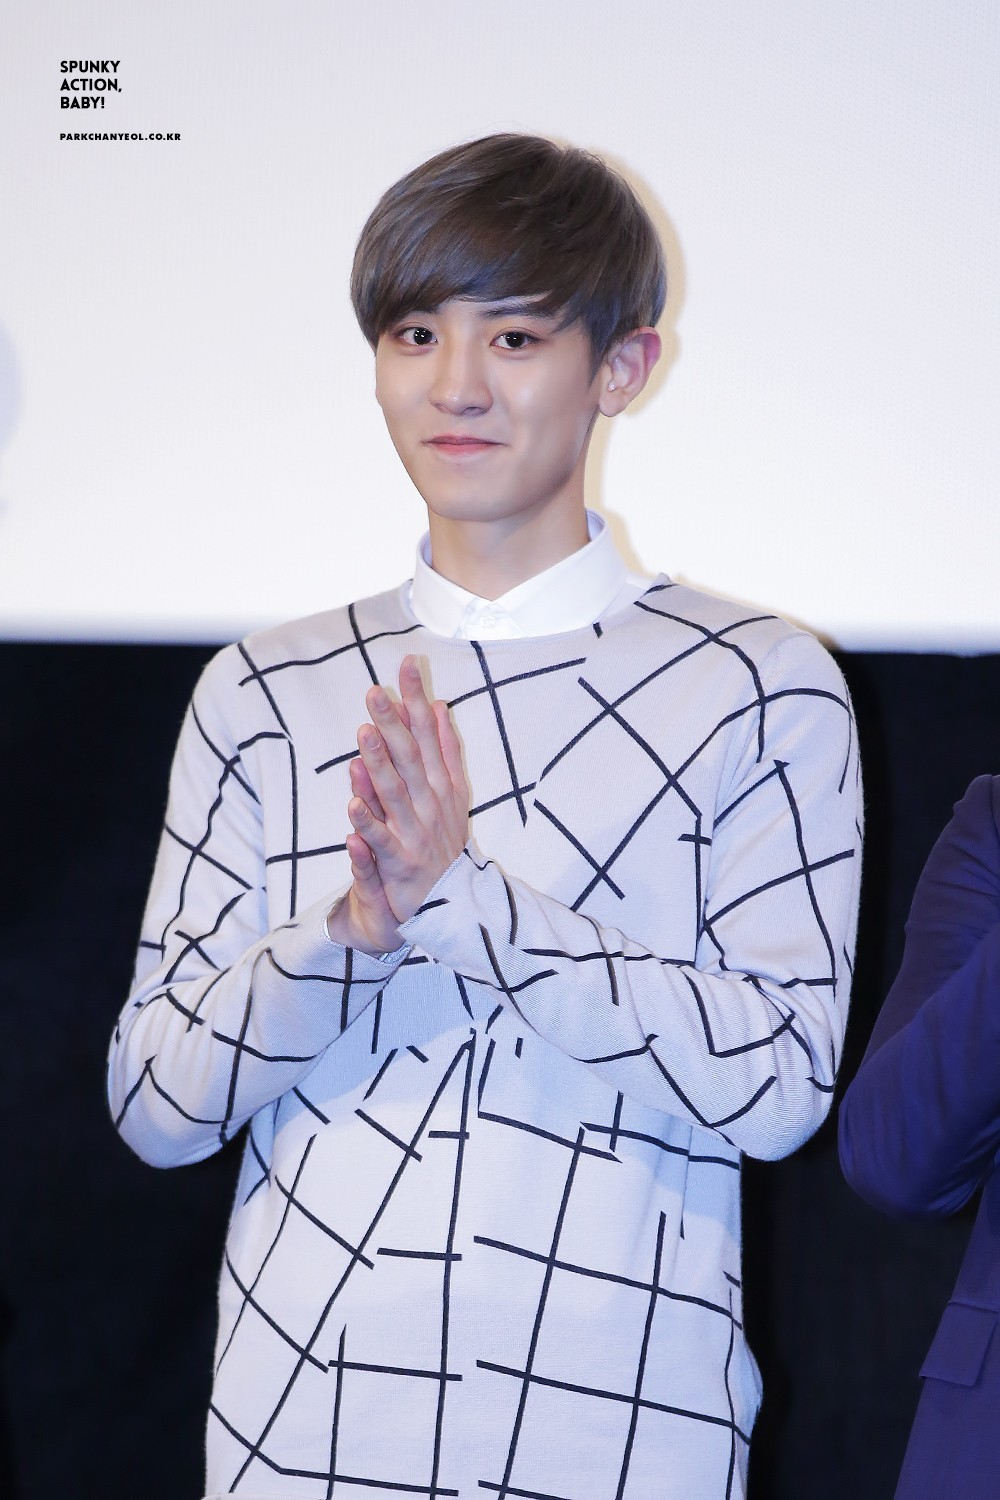 (c) parkchanyeol.co.kr